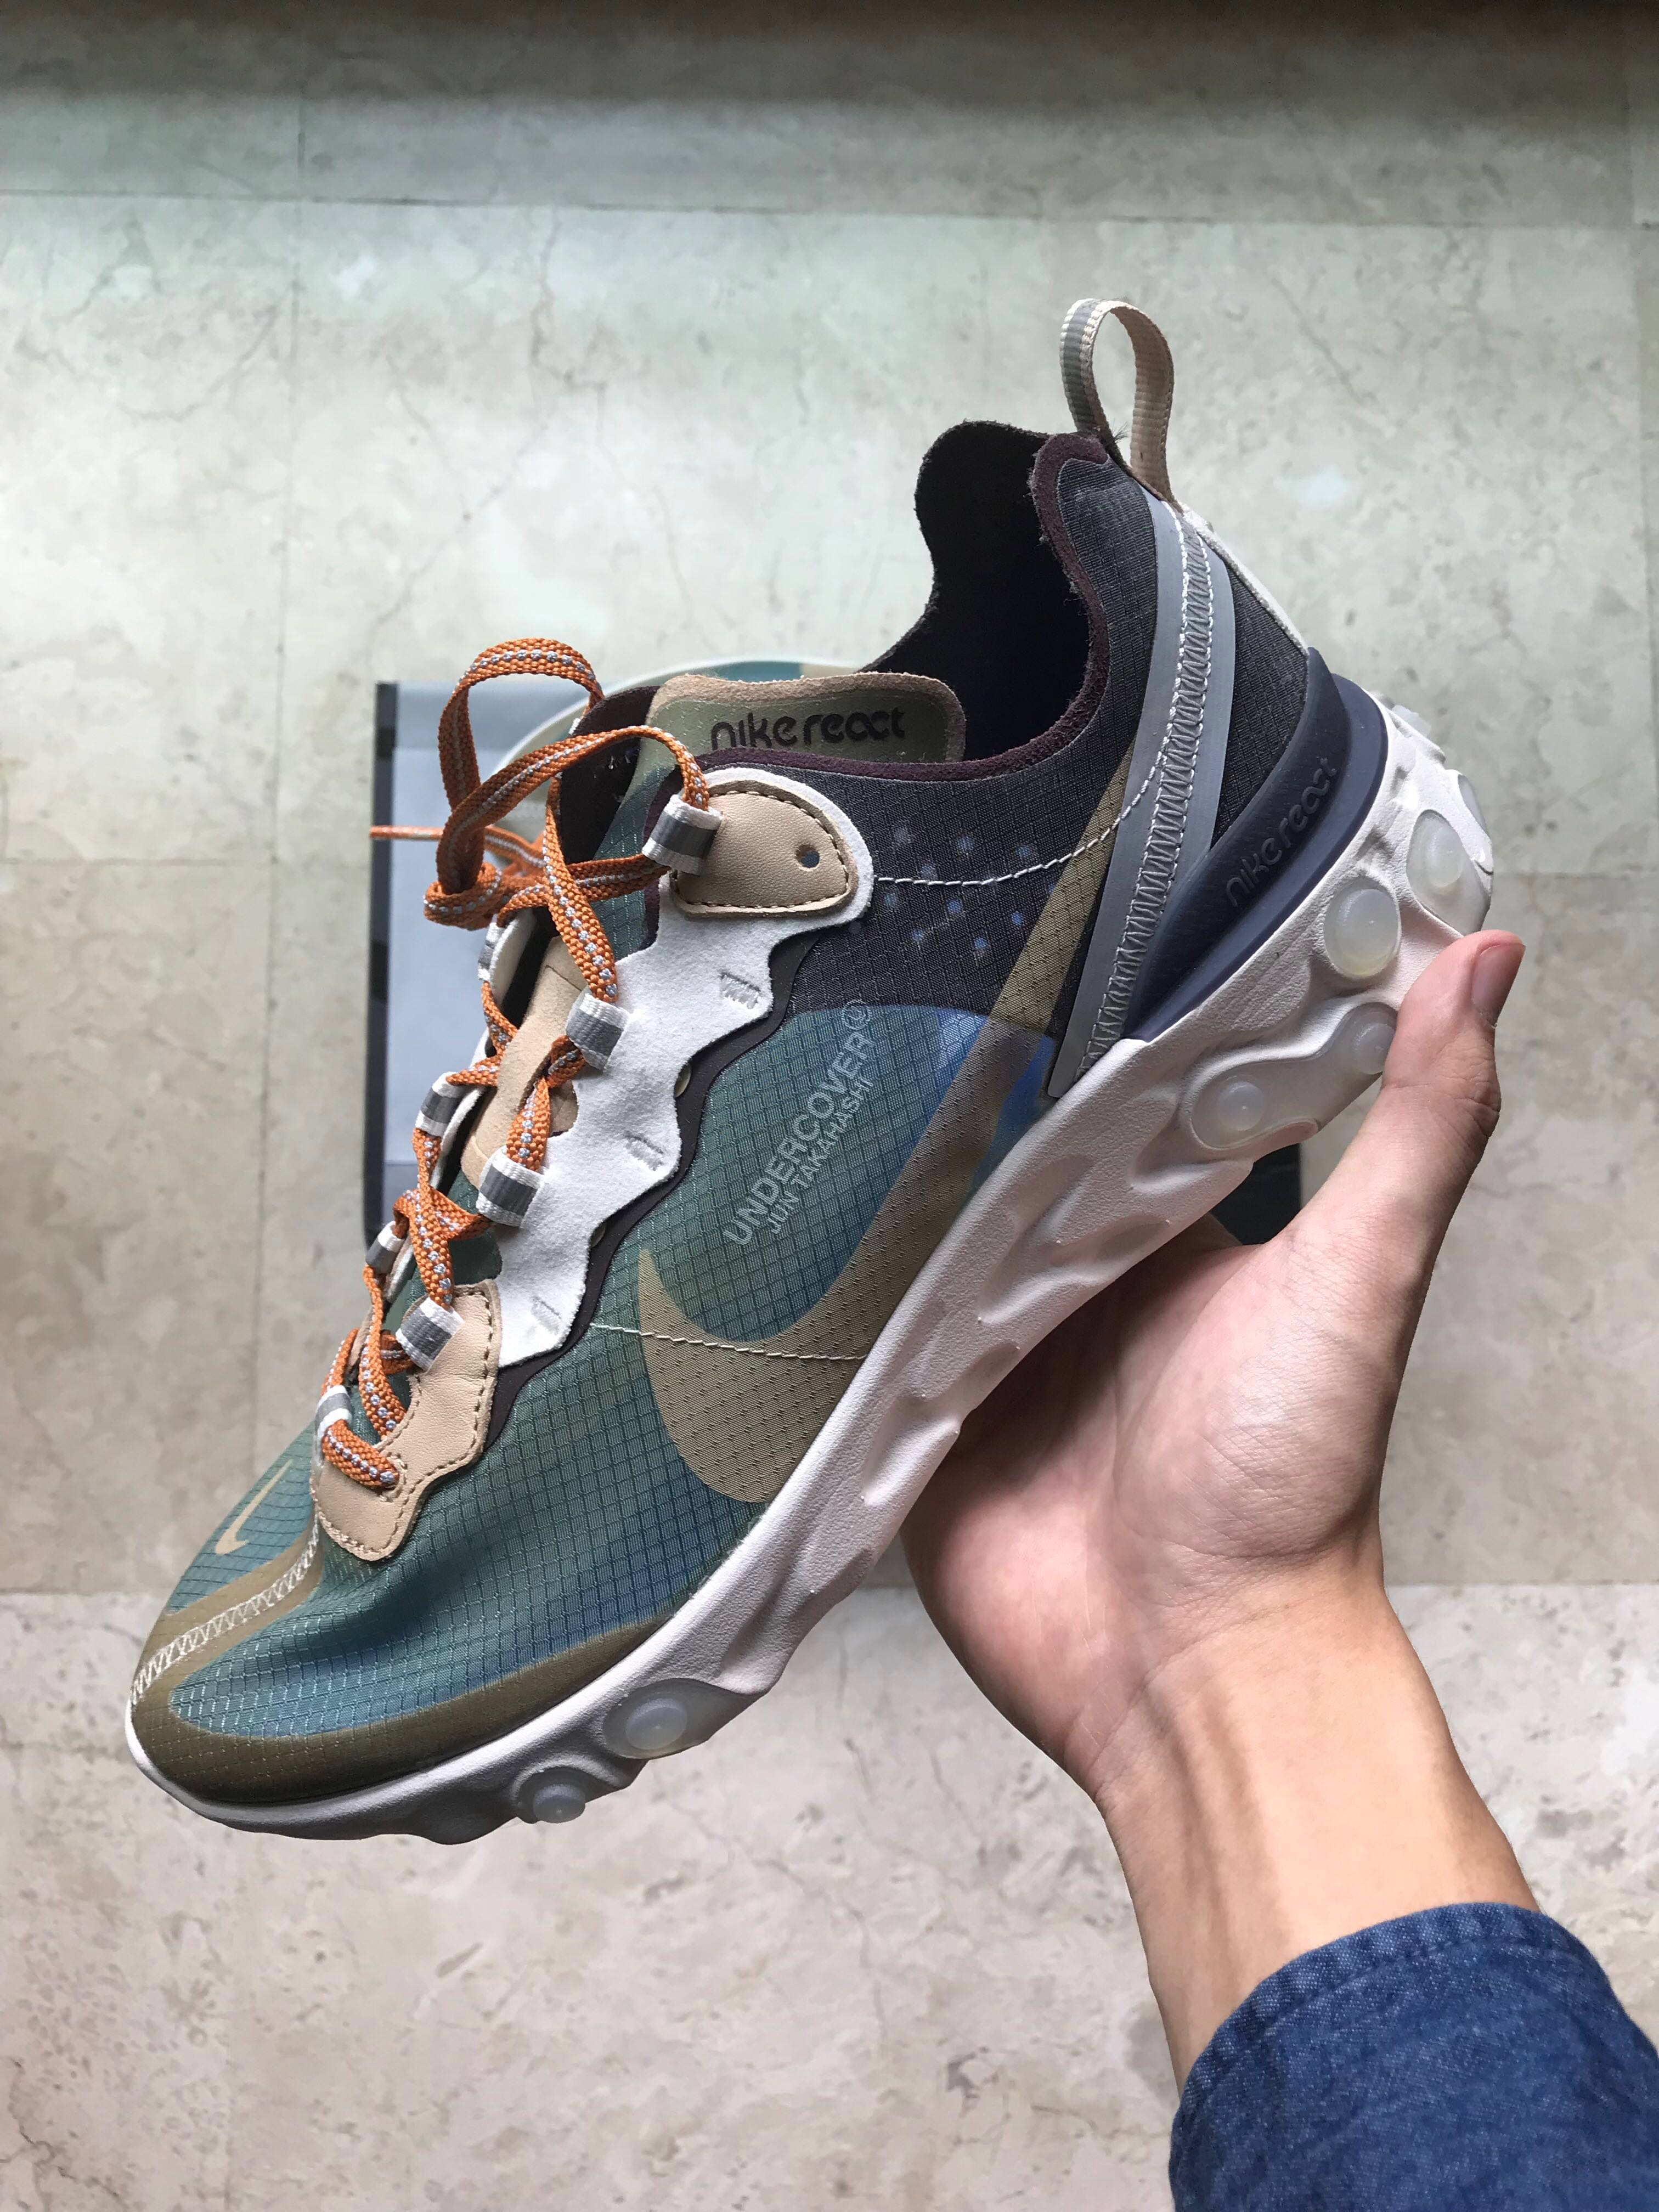 7fd4a8d53bf2 Home · Men s Fashion · Footwear · Sneakers. photo photo ...